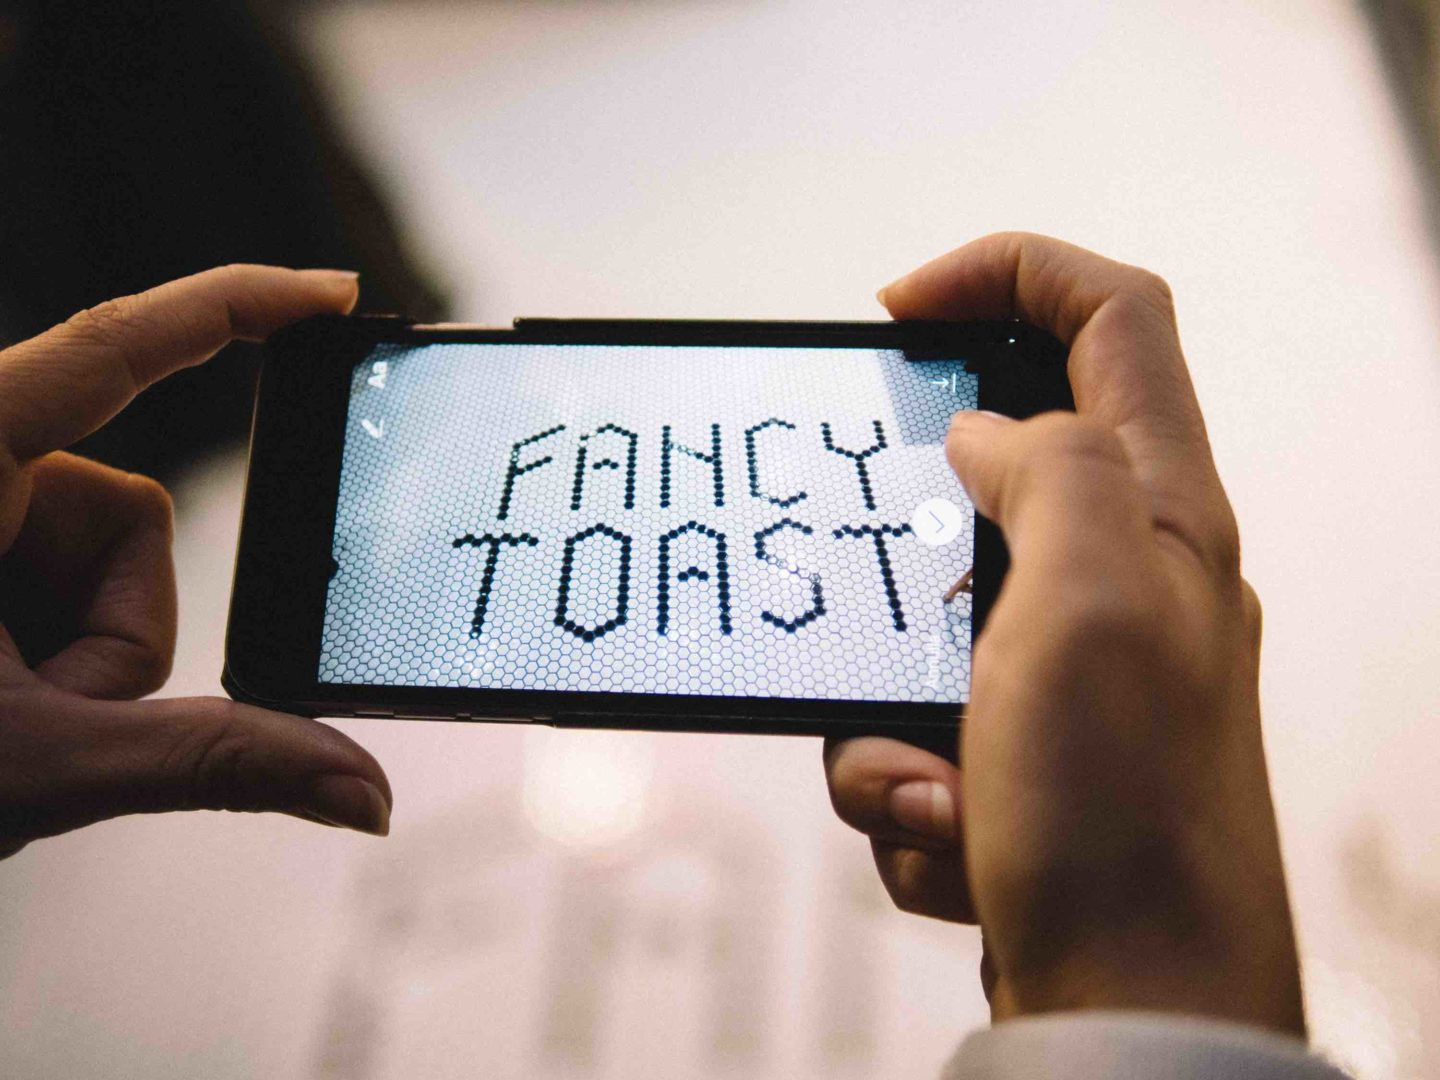 fancytoast: toast in stile californiano a milano